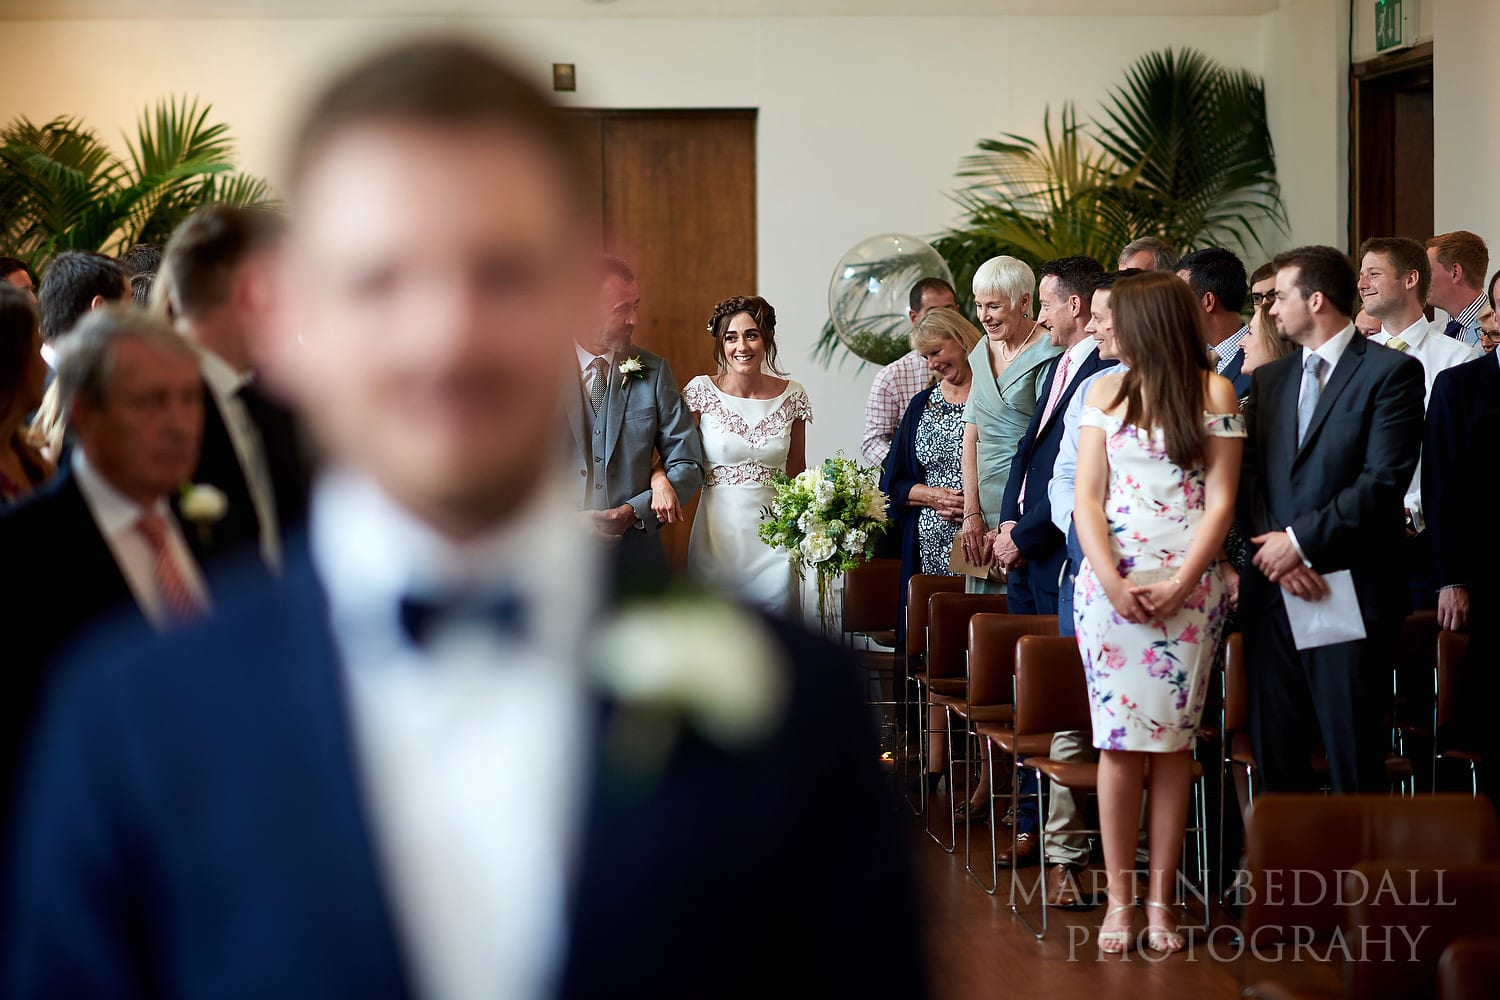 Bride walks down the aisle with her father at RIBA wedding